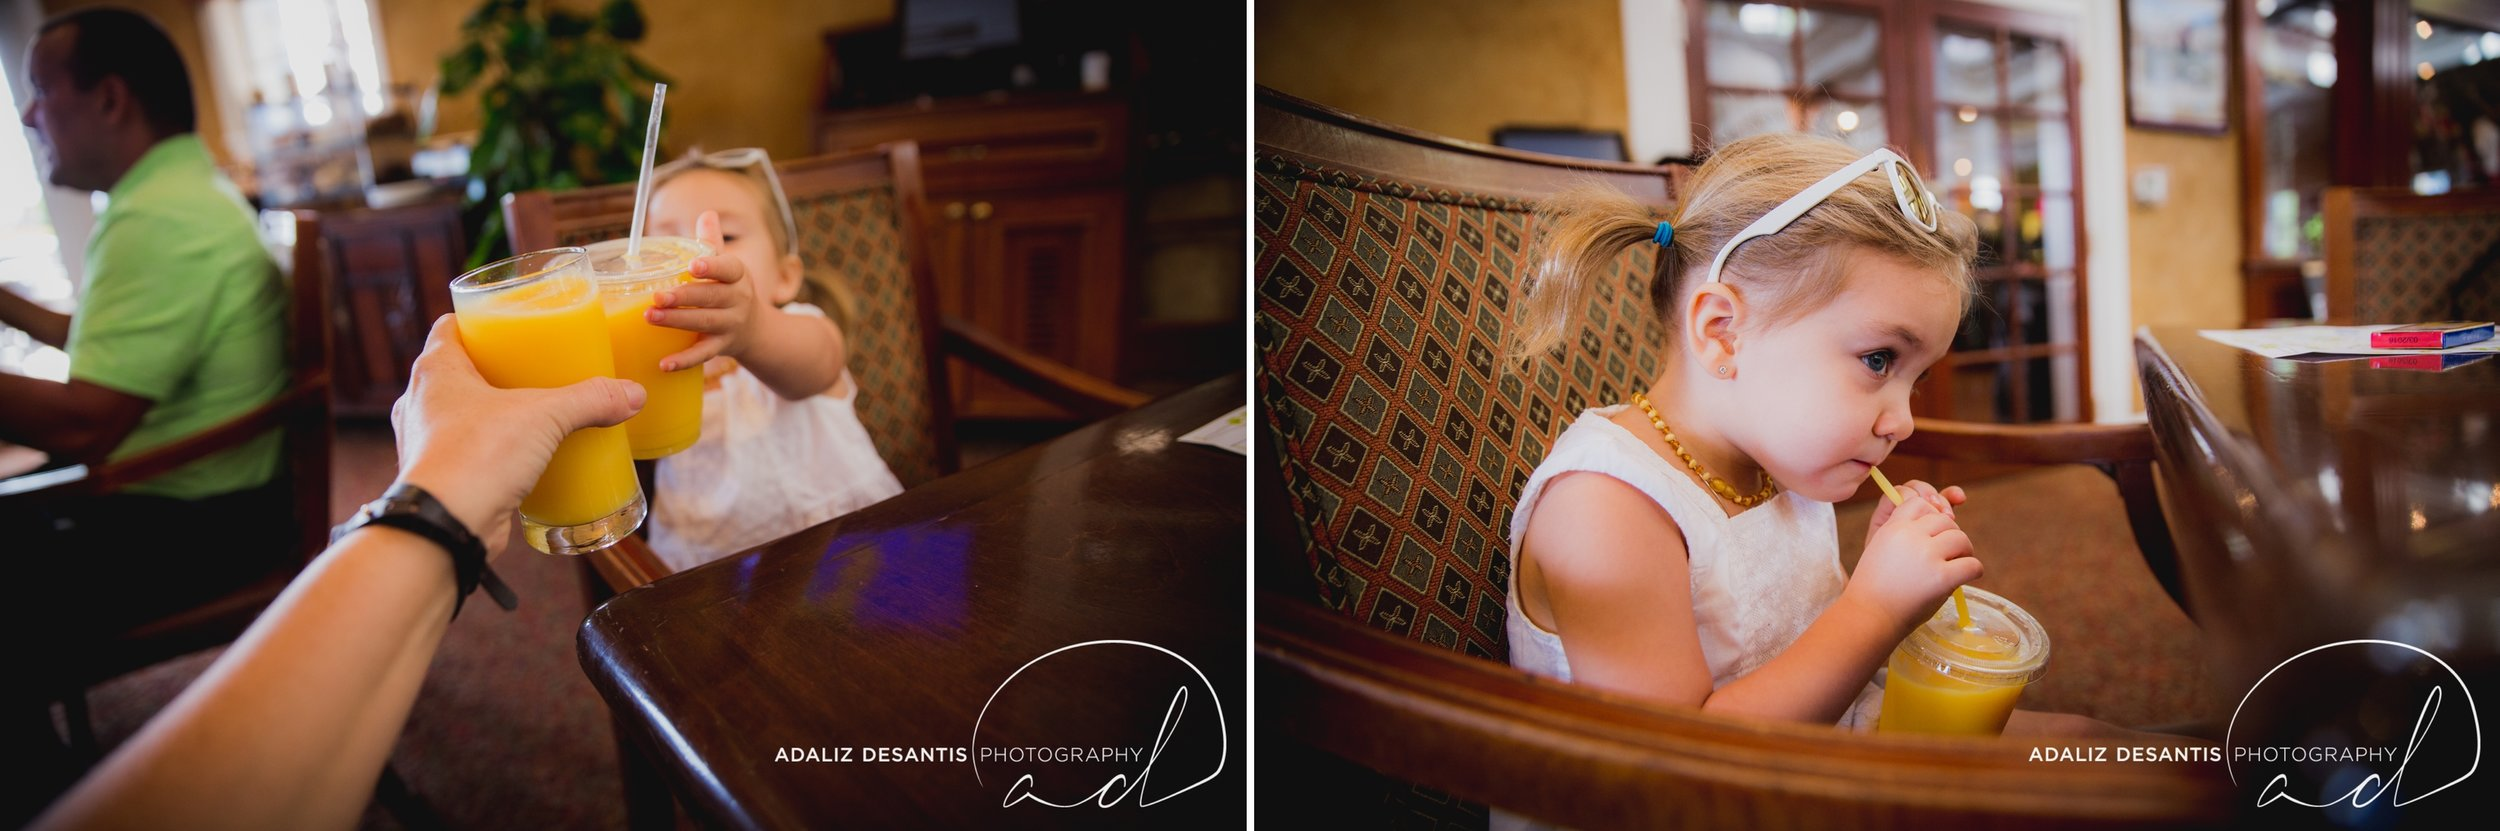 Reunion Resort Getaway day in the life orlando fort lauderdale wedding photographer 19.jpg